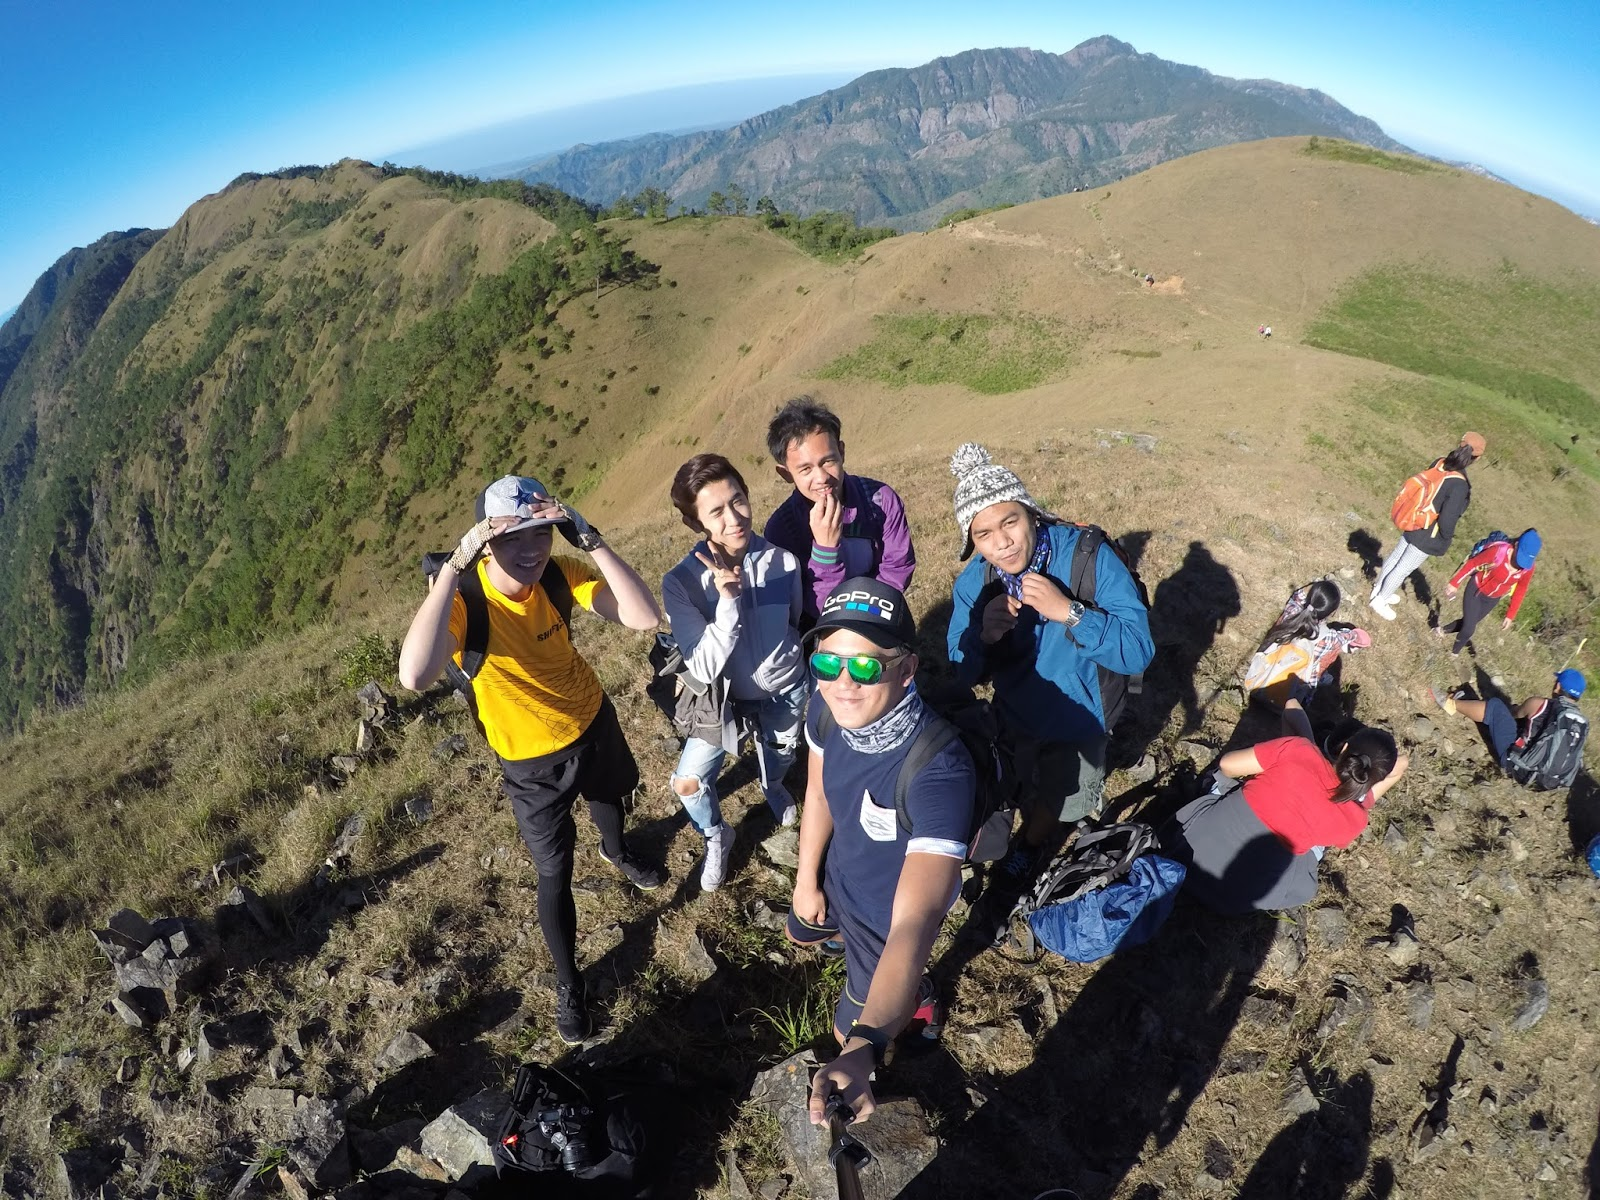 Travel Guide for Mt. Ulap Itogon Benguet